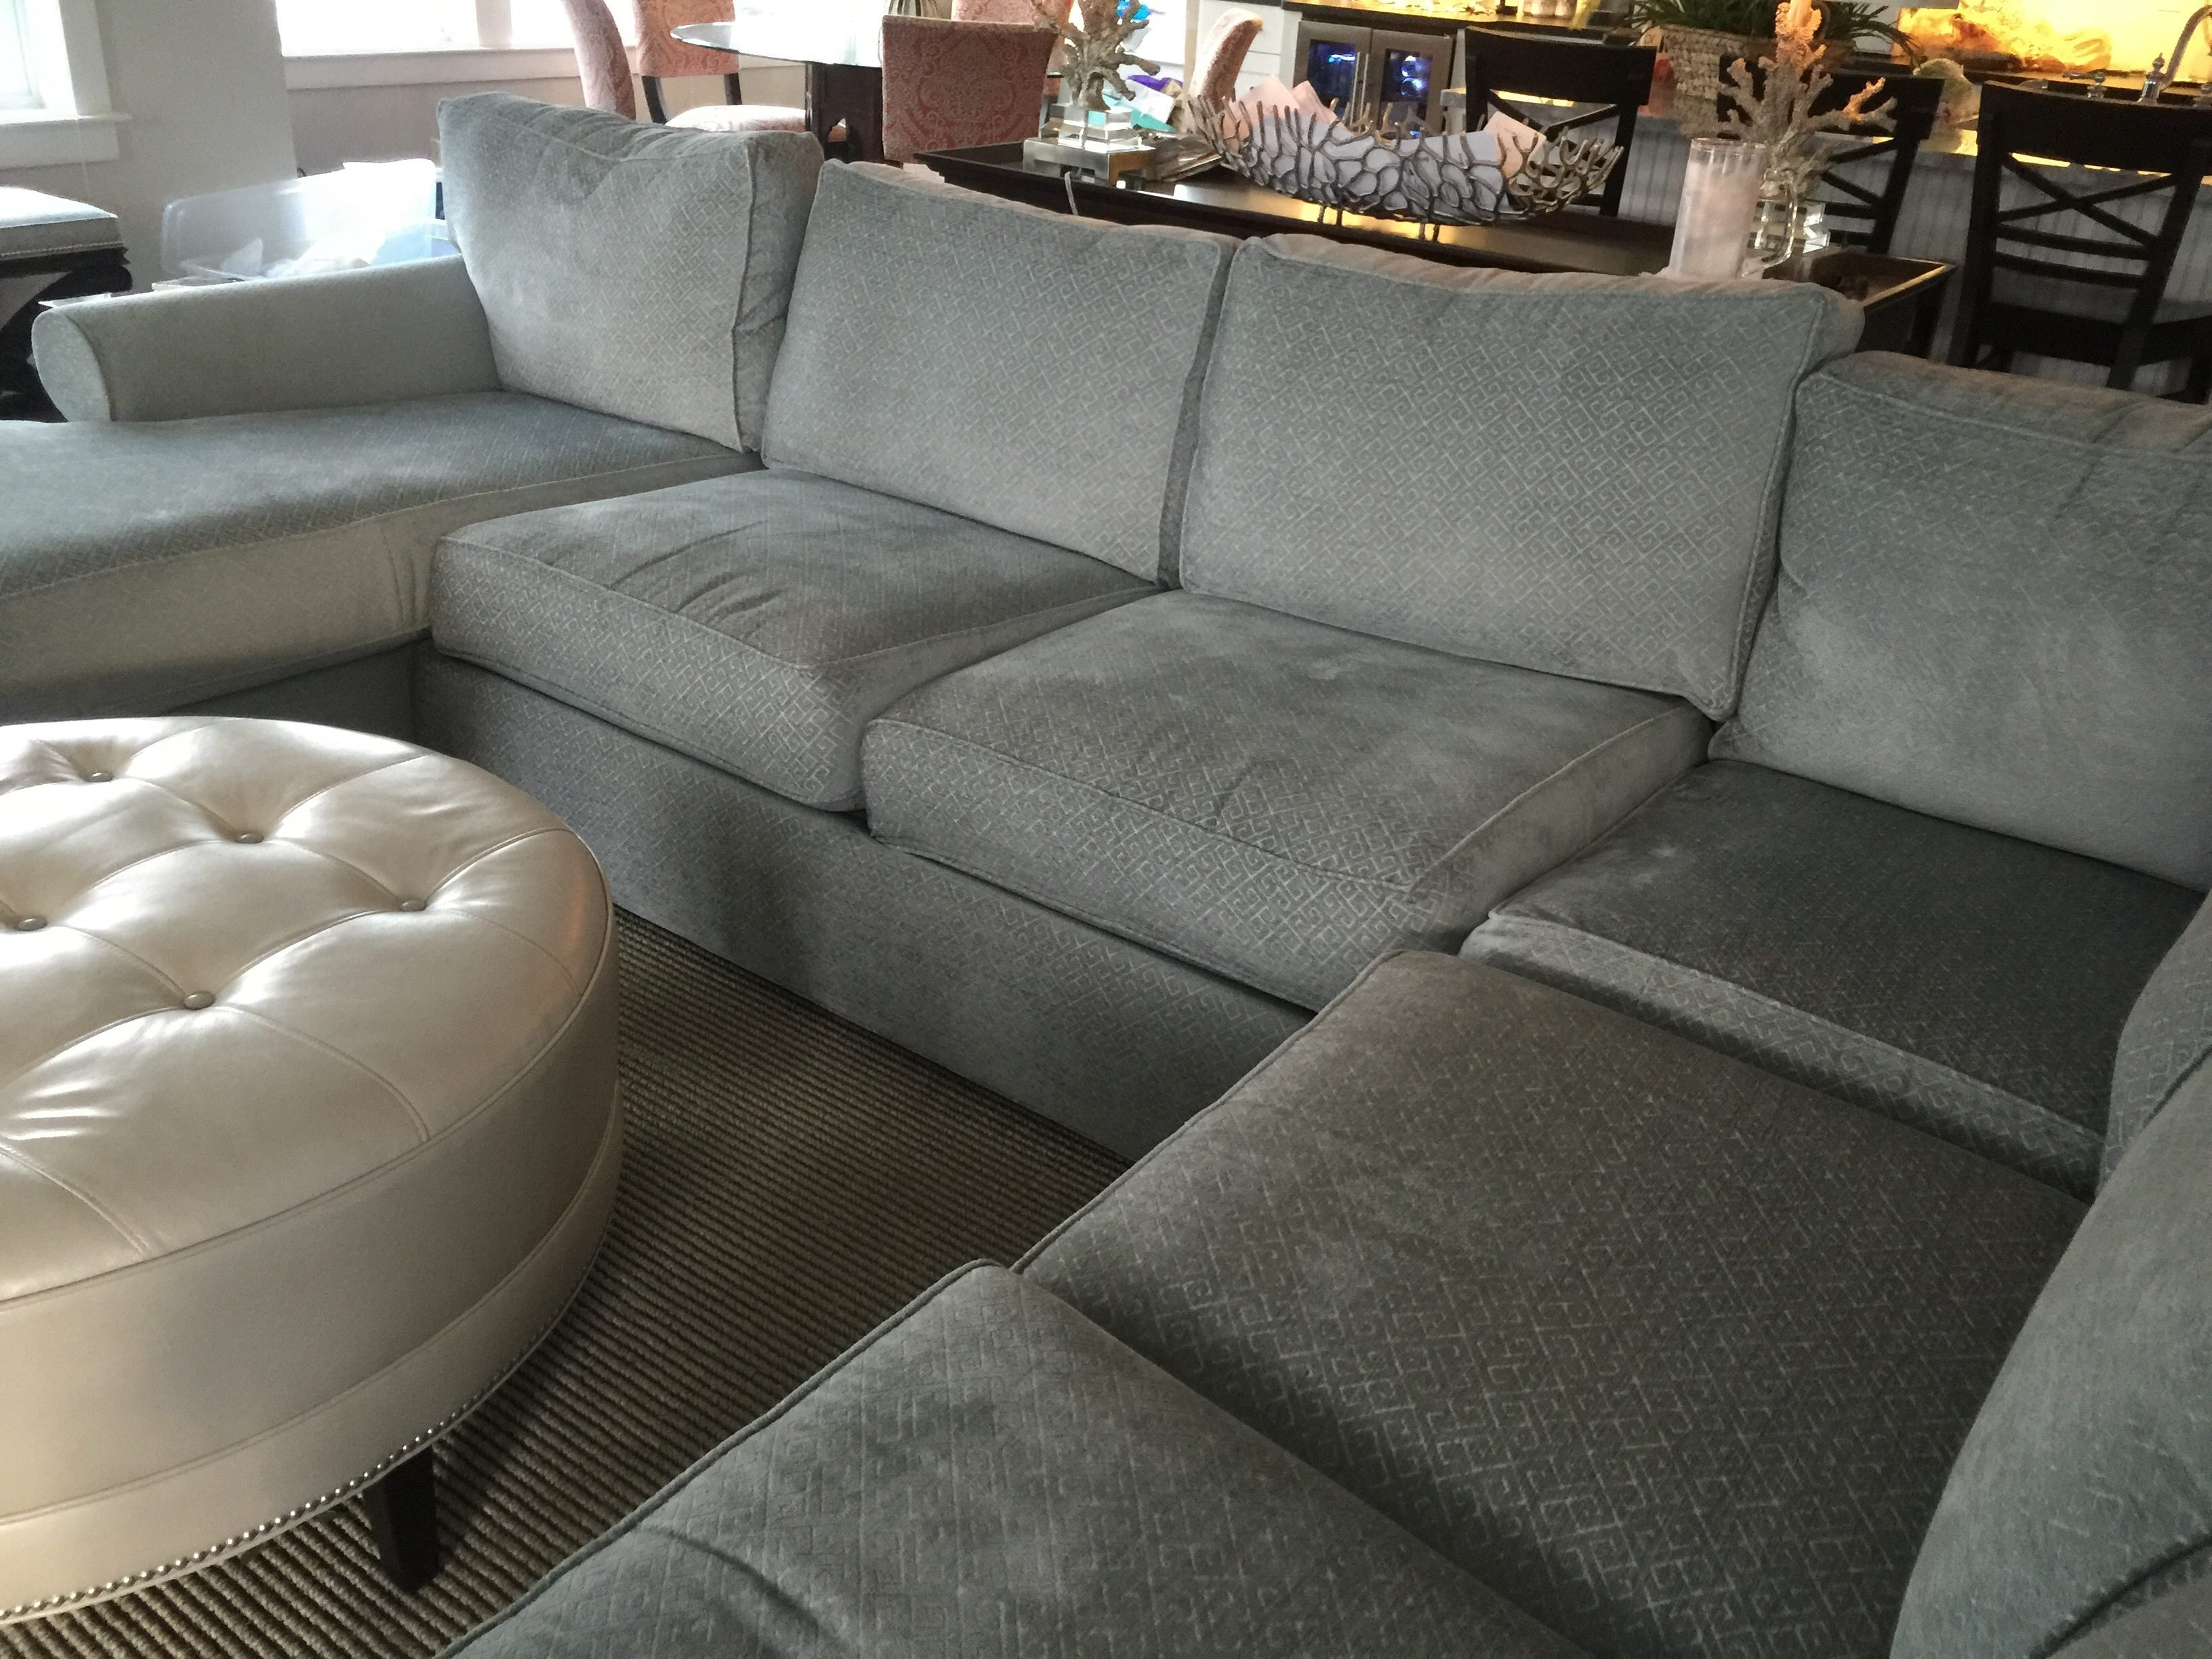 Craigslist Sectional Sofa Furniture Sectional Couch Craigslist